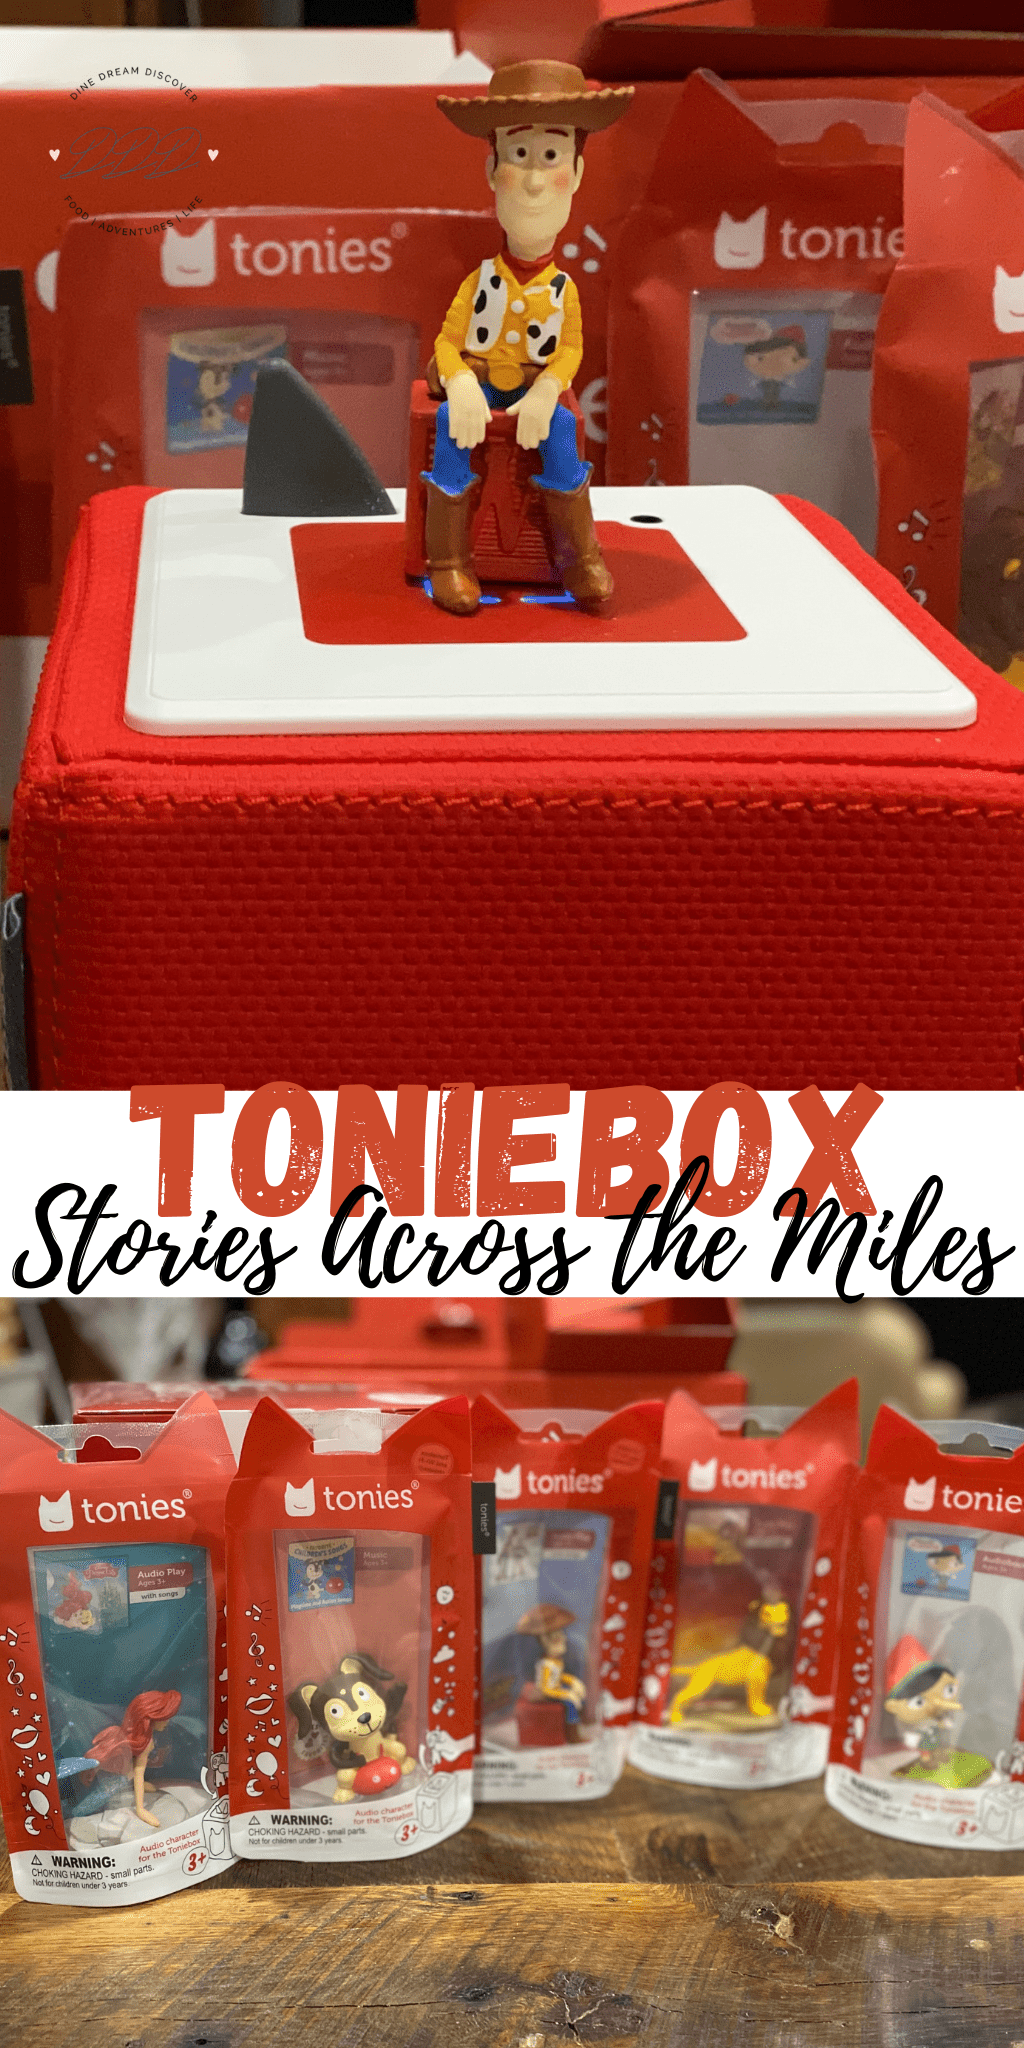 Bedtime Stories Across the Miles with Toniebox